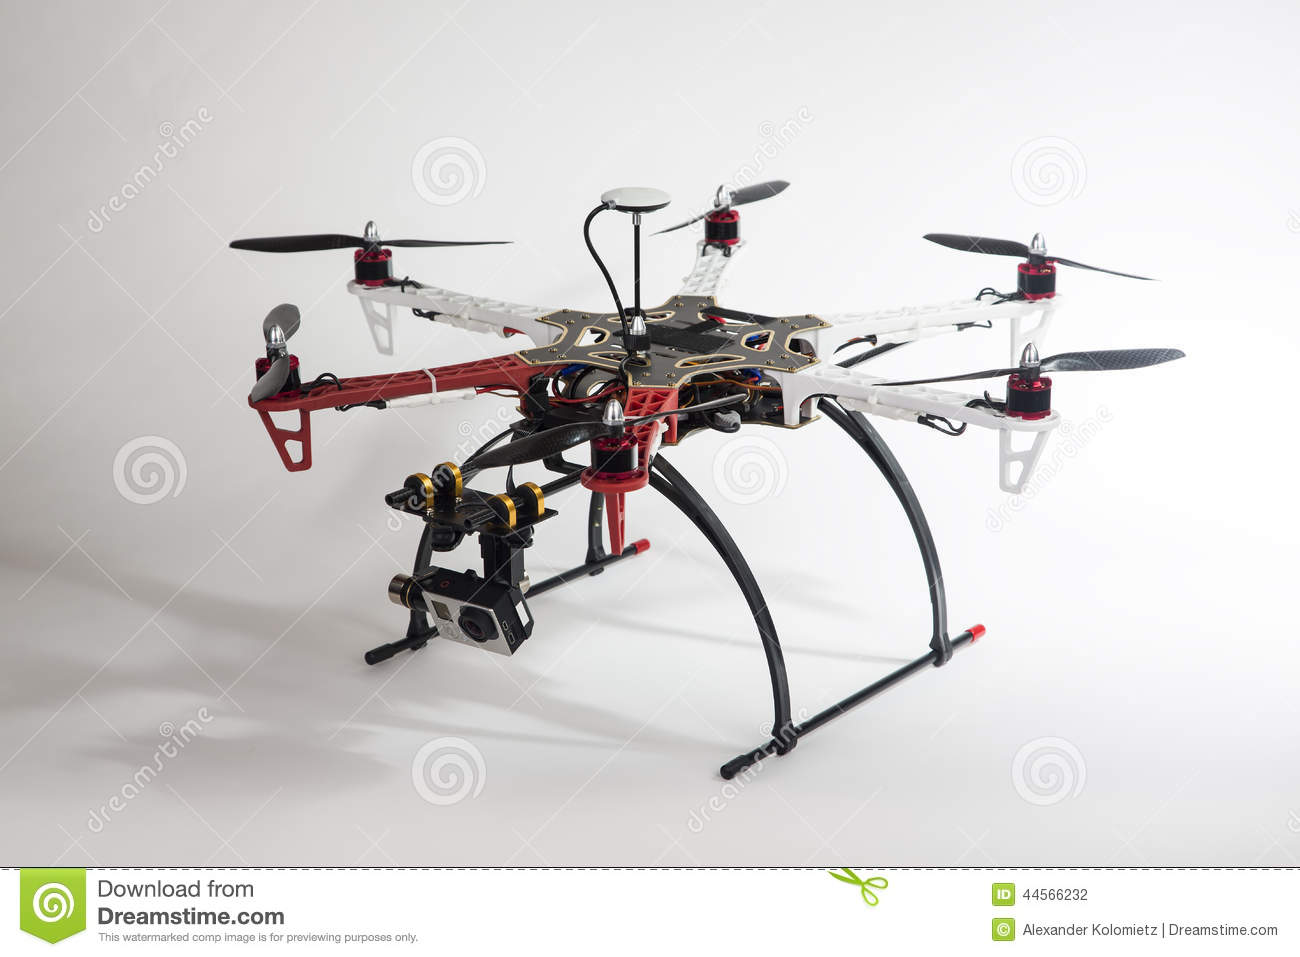 uav cameras with Stock Photo Drone White Red Arms Hexacopter Attached Camera Background Image44566232 on 2017 Best Camera Drones Buying Guide besides Military Robots Presentation together with Body Worn Cameras furthermore Autonomous Passenger Drone Features Modular Design For Different Situations moreover Ir Cameras Inspecting Roofs.